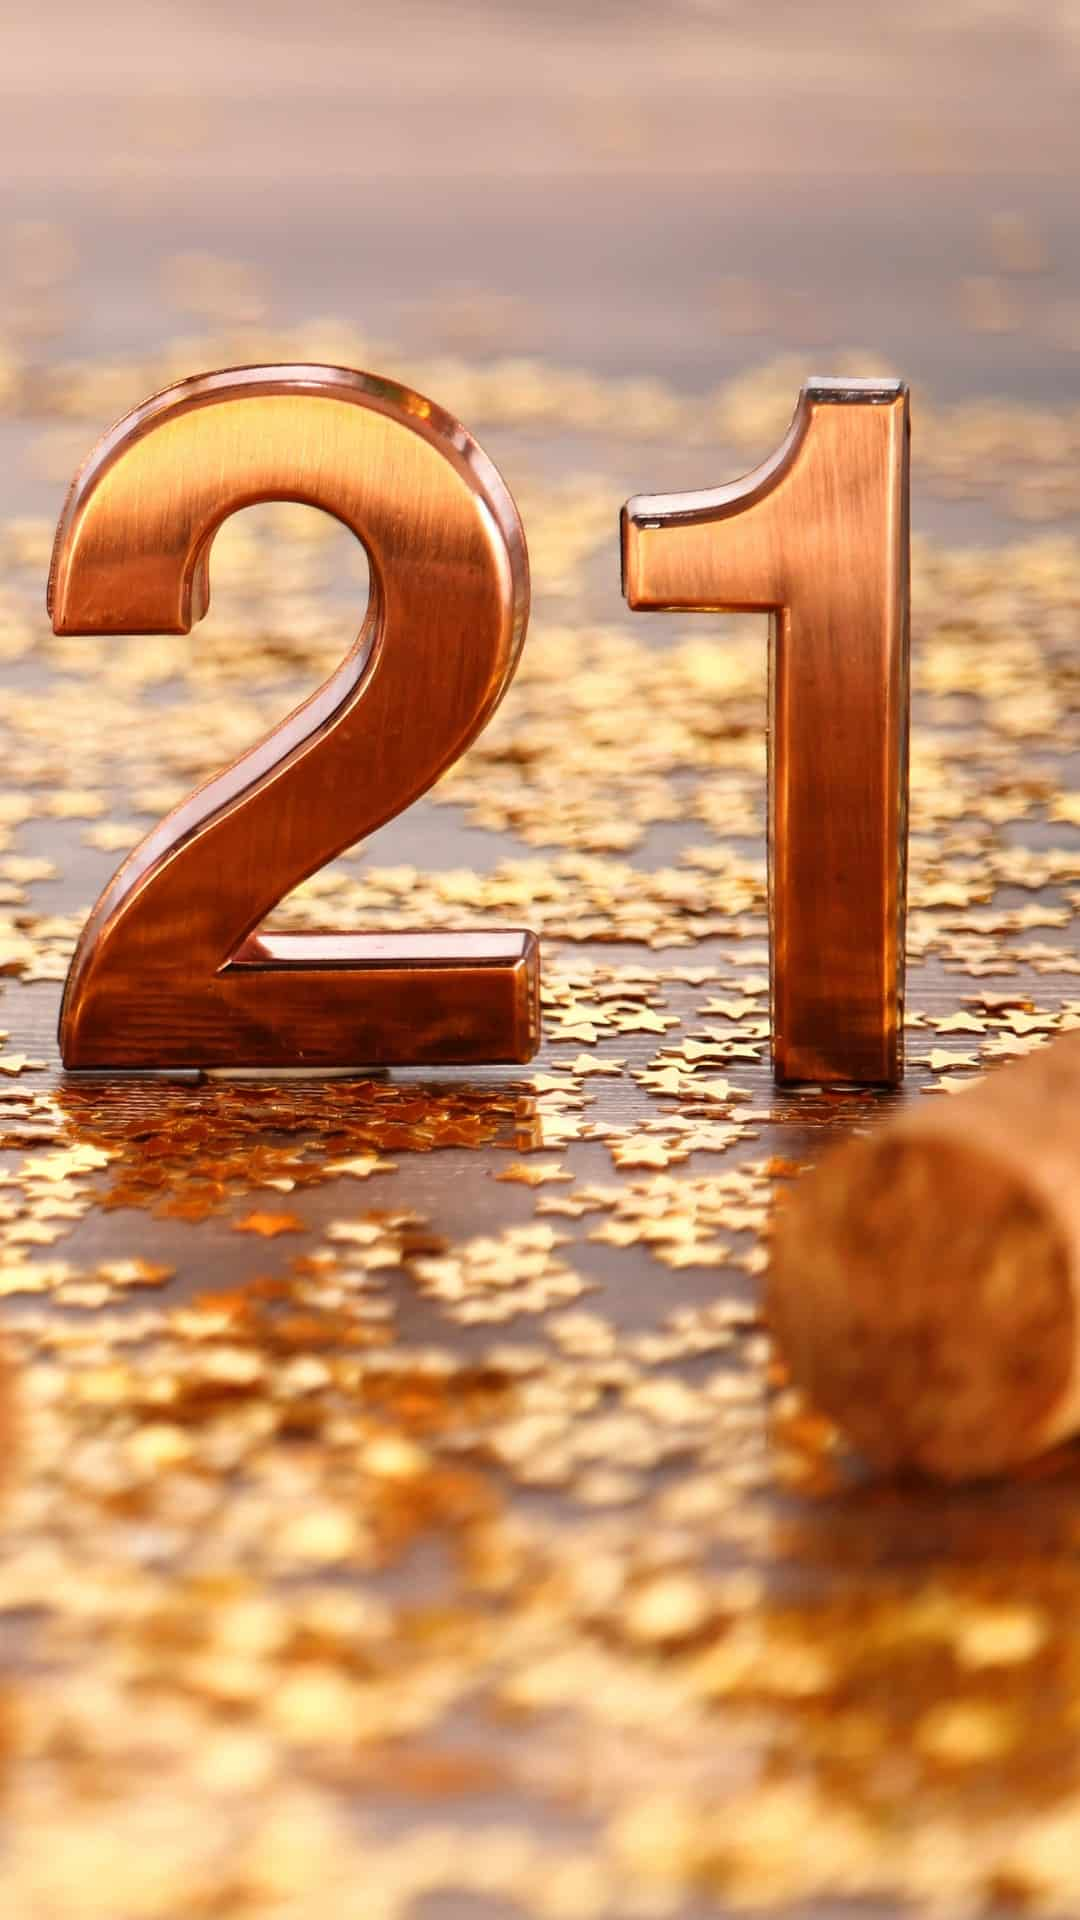 Happy New Years Aesthetic iPhone Wallpaper Backgrounds 5